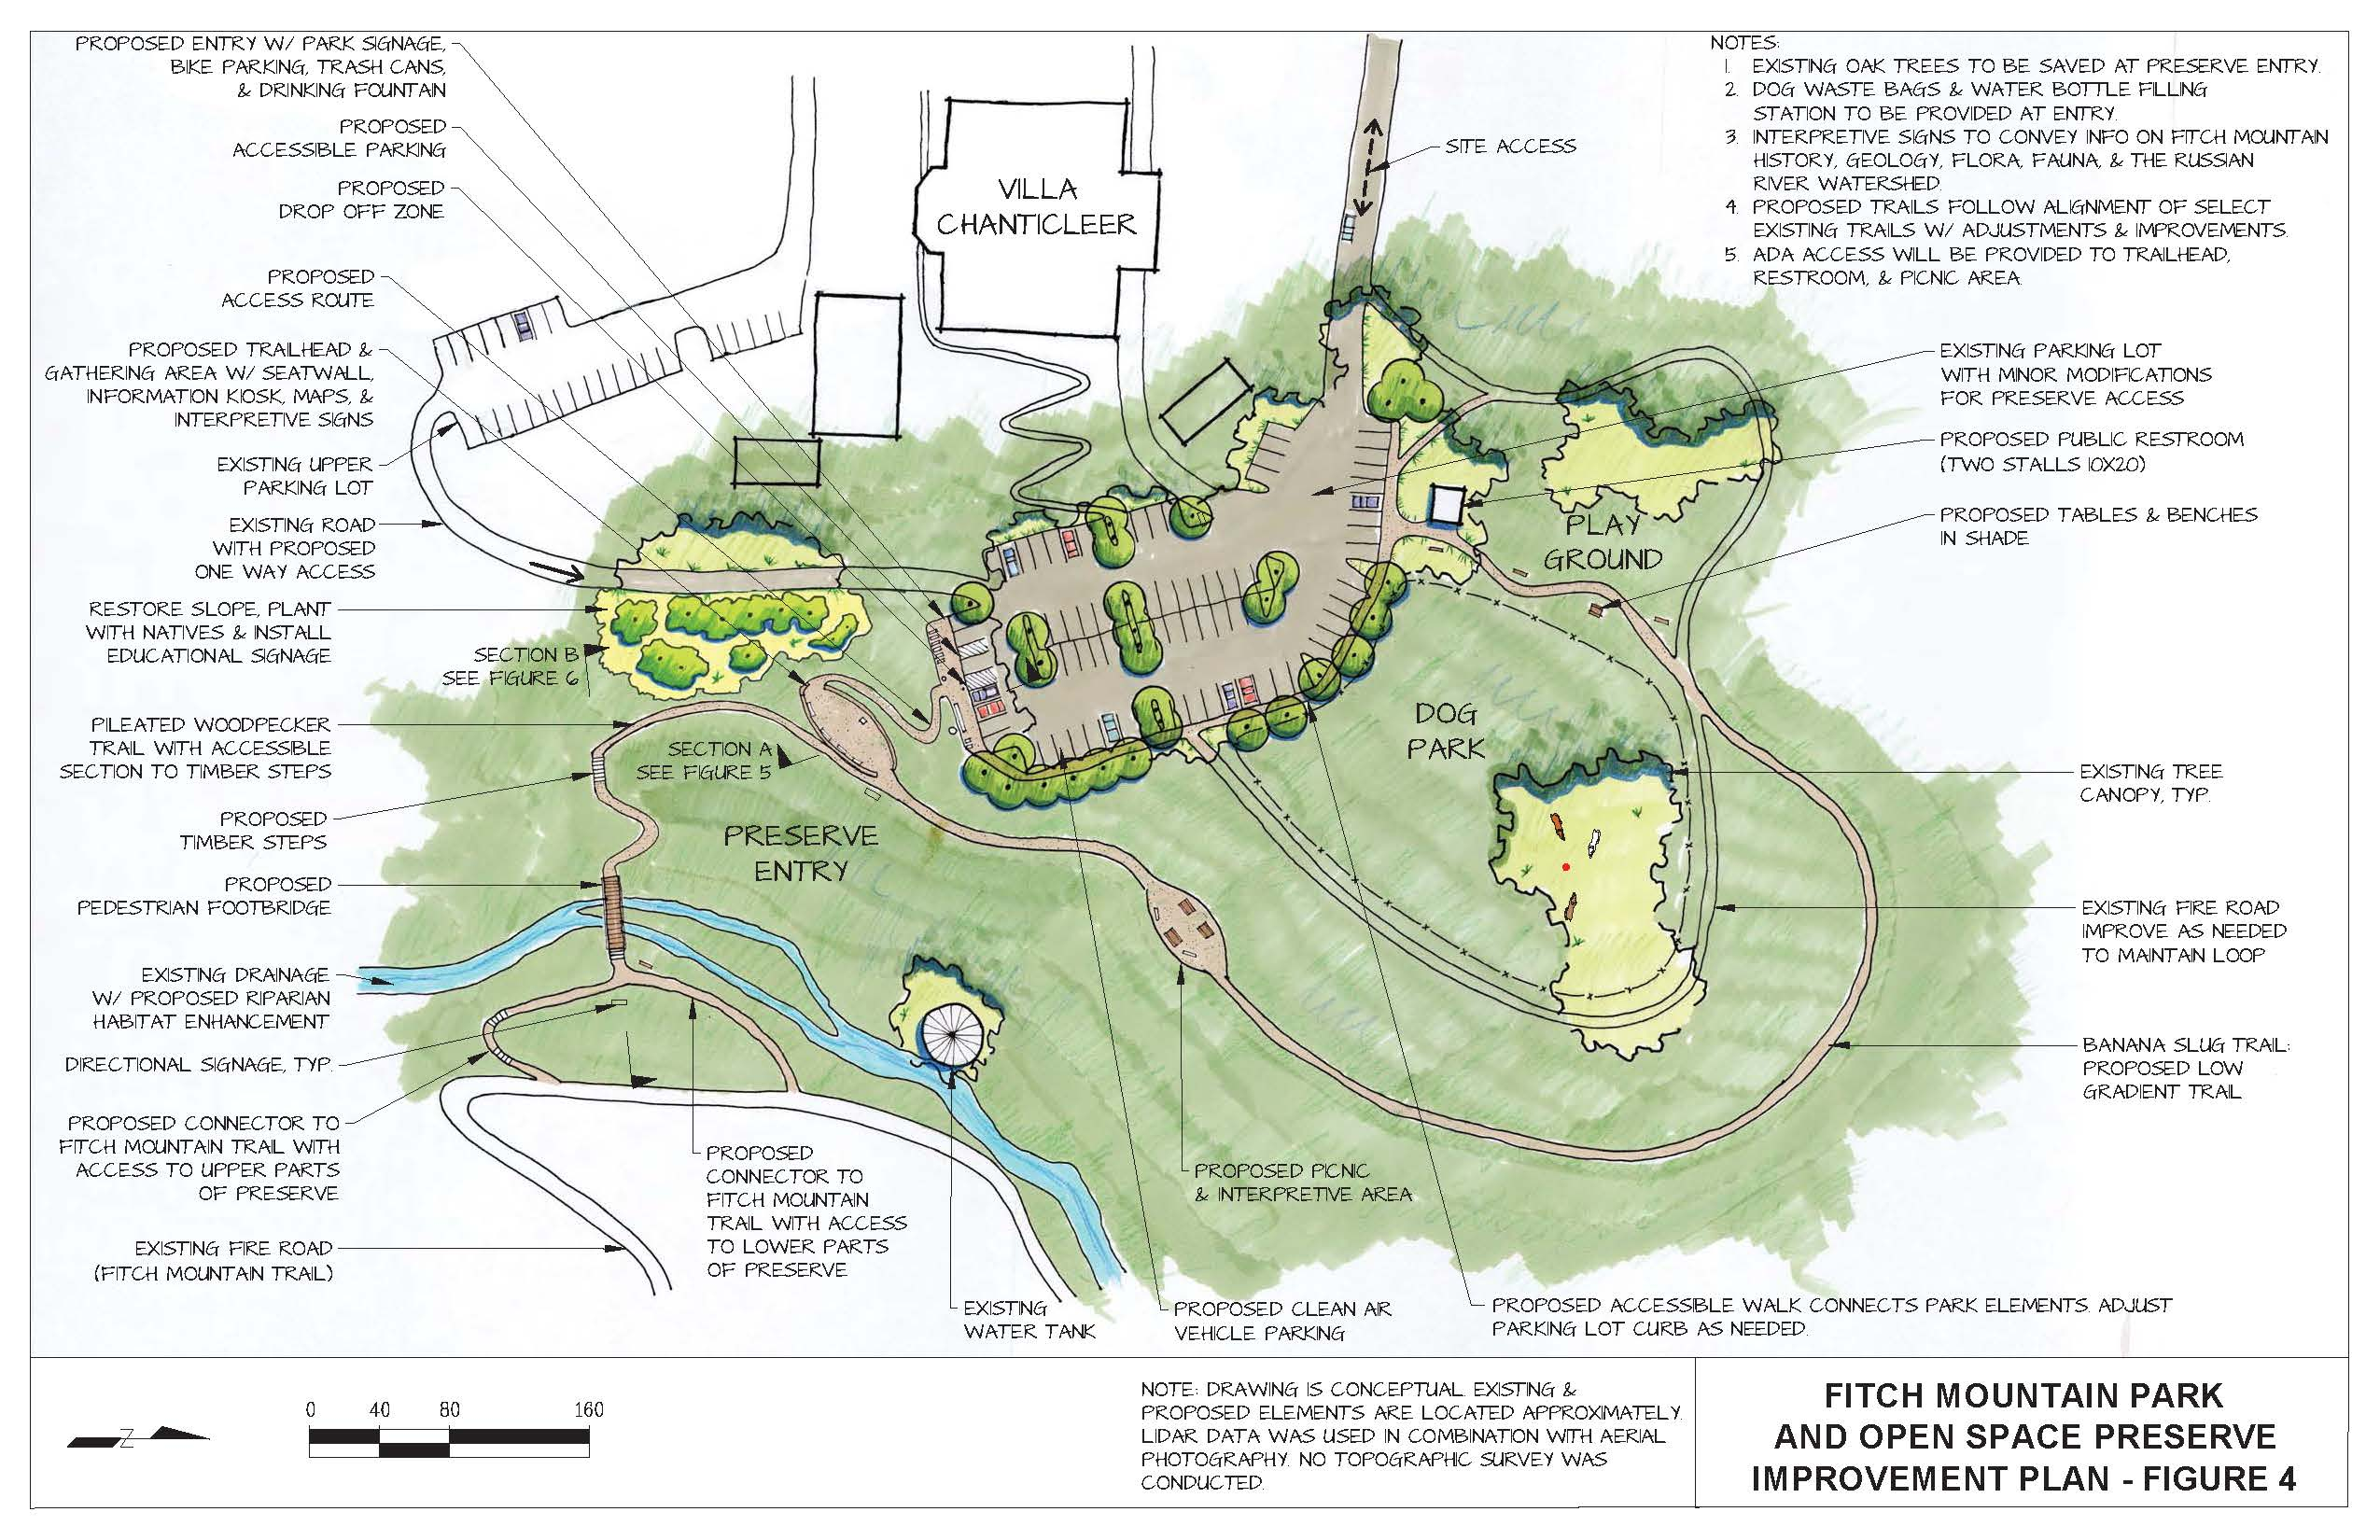 Fitch Mountain Access Improvement Plan